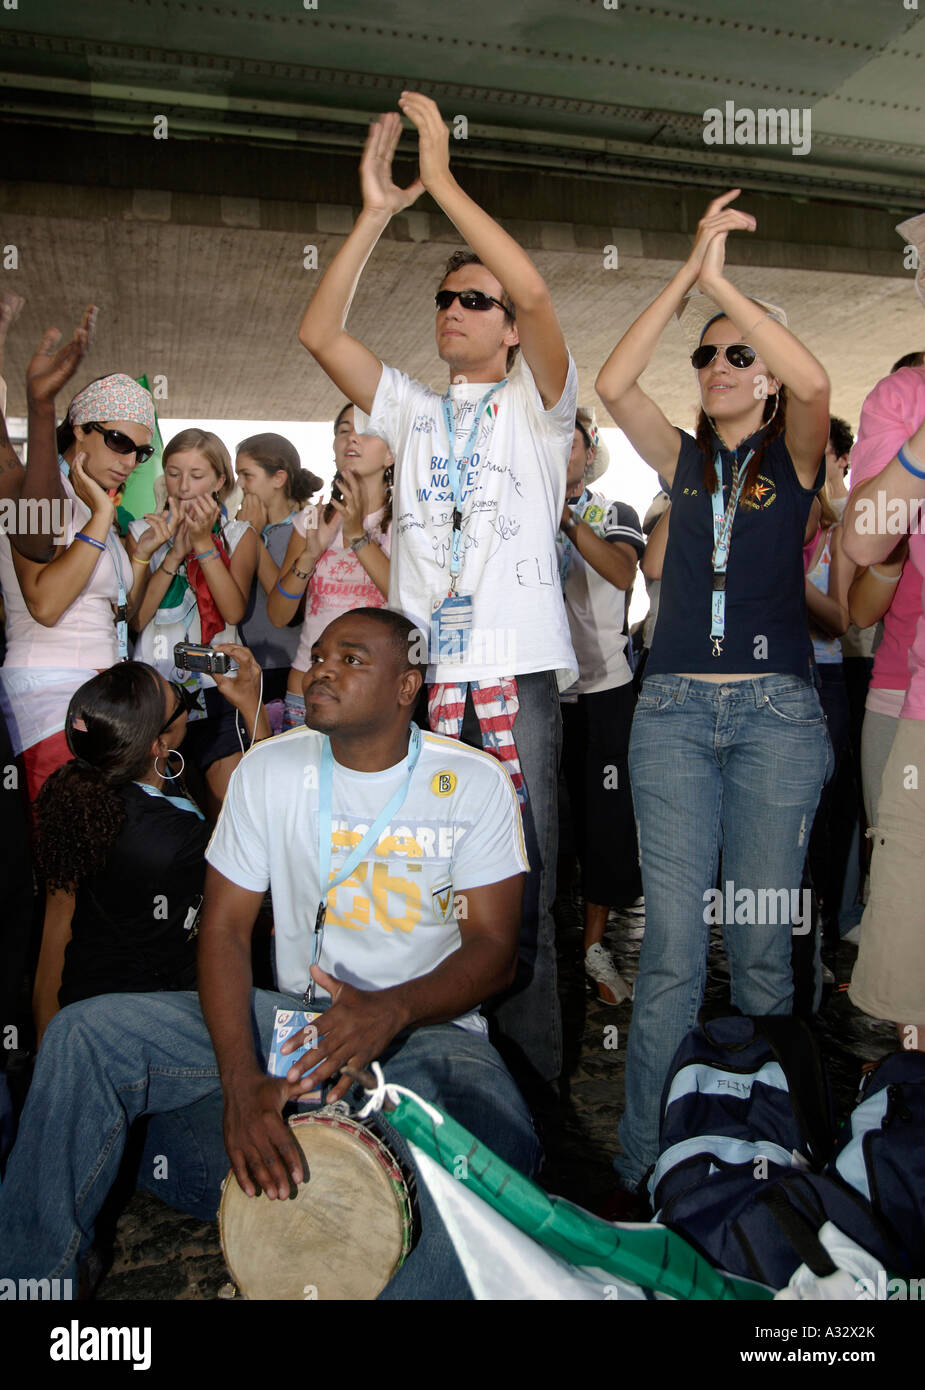 World Youth Day - young pilgrims cheering for the Pope, Cologne, Germany - Stock Image